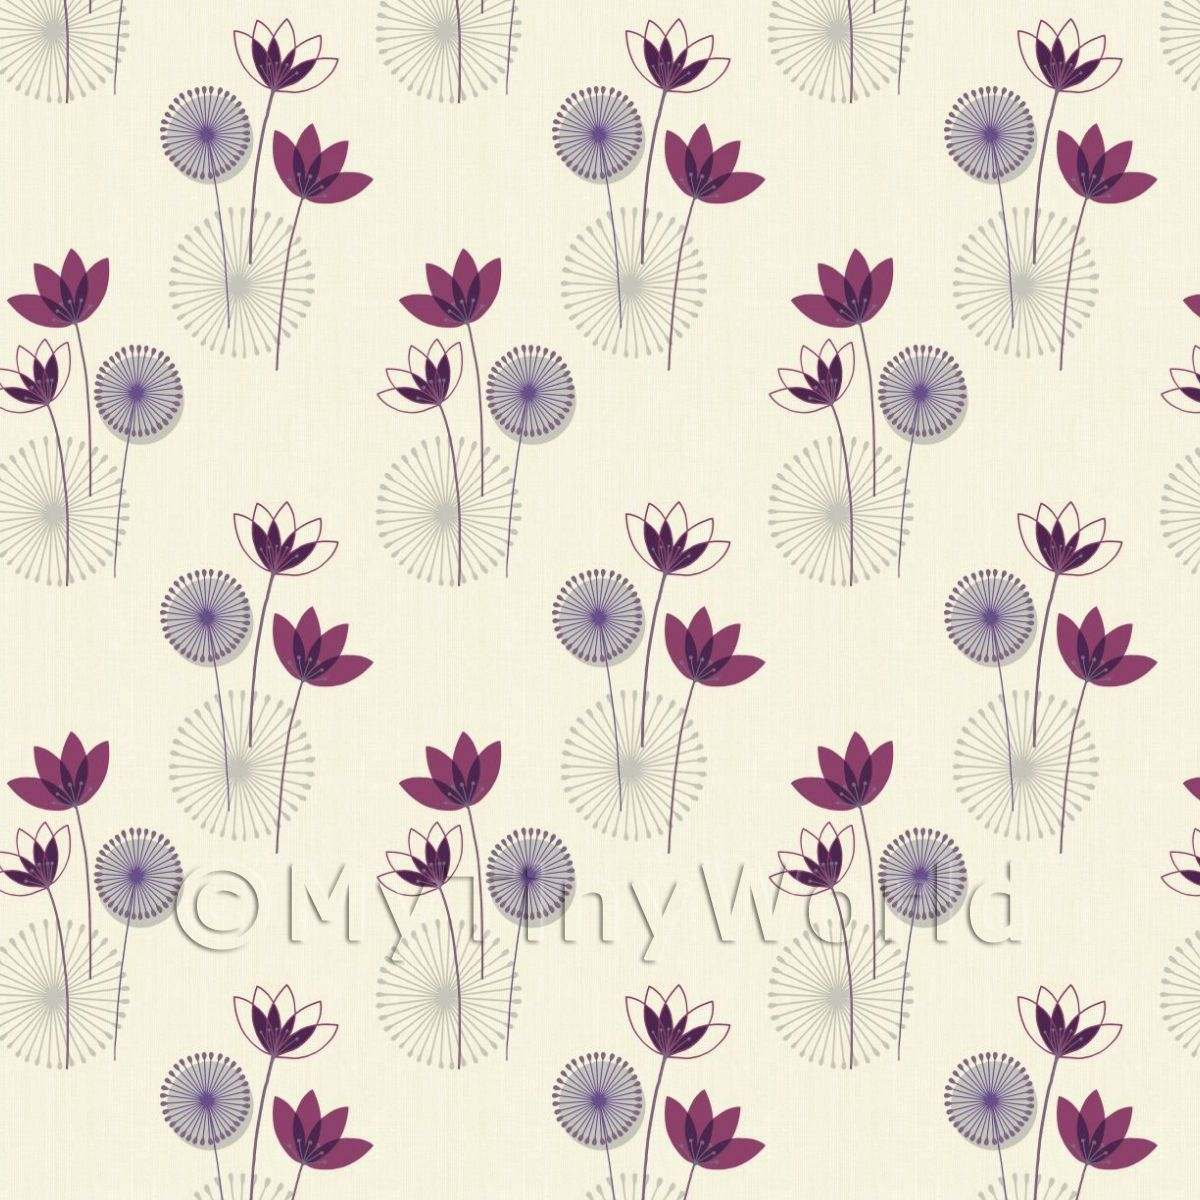 Dolls House Miniature Styalised Purple Flower Wallpaper